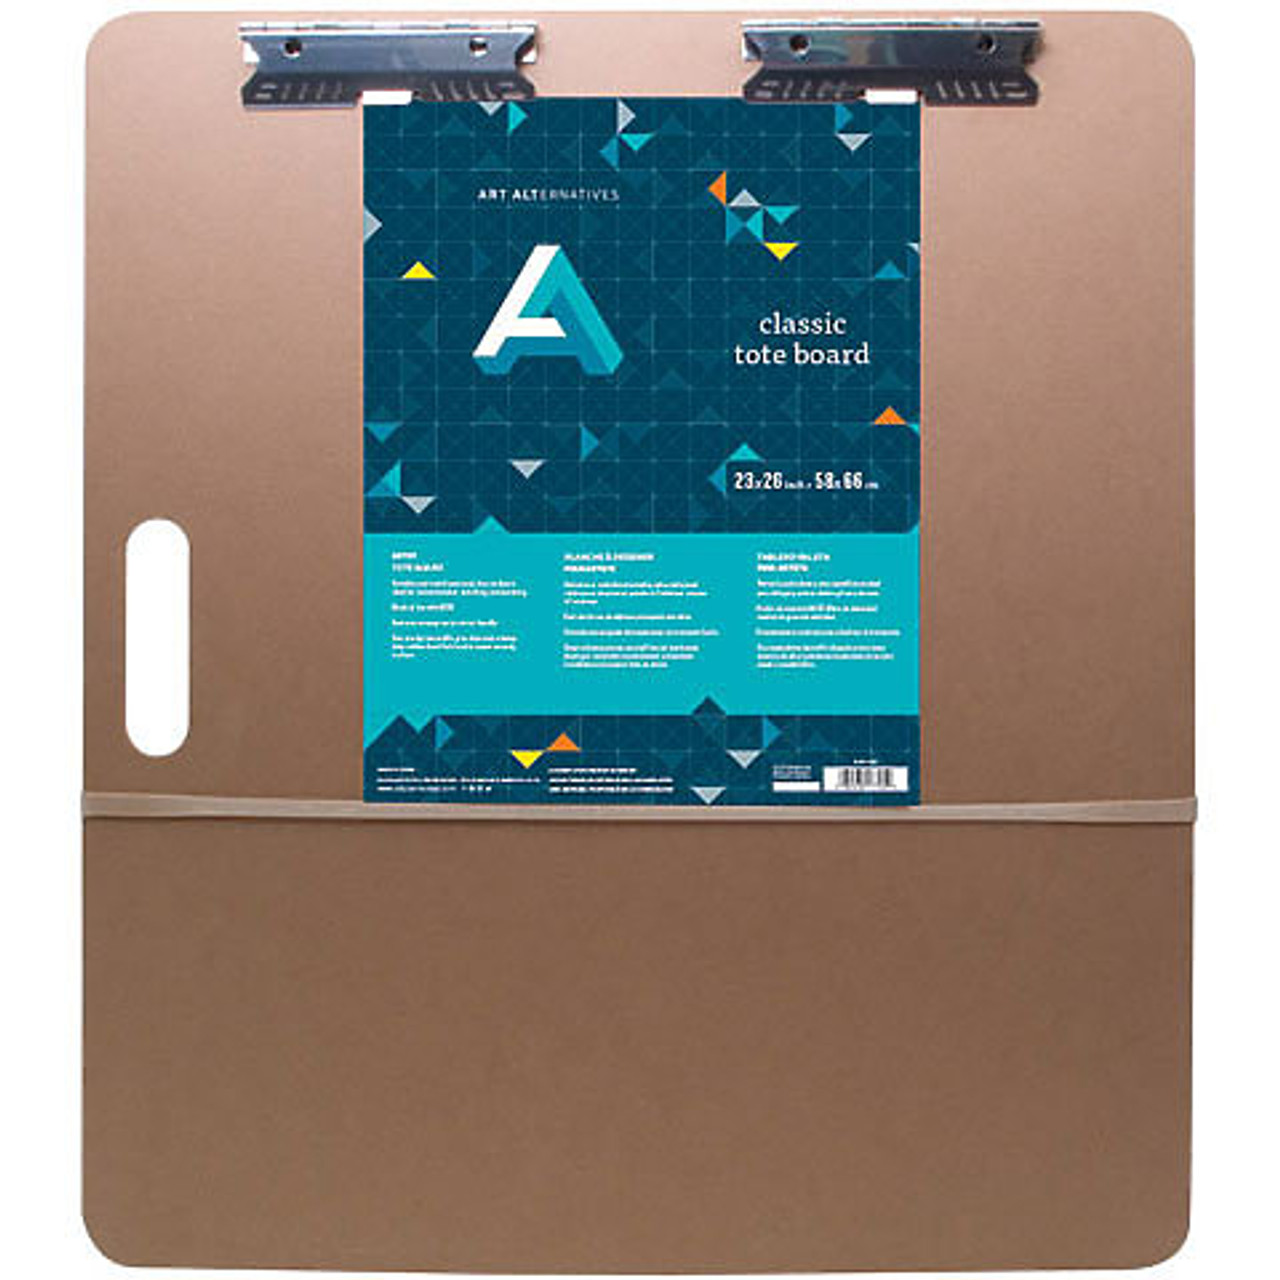 AA Tote Boards